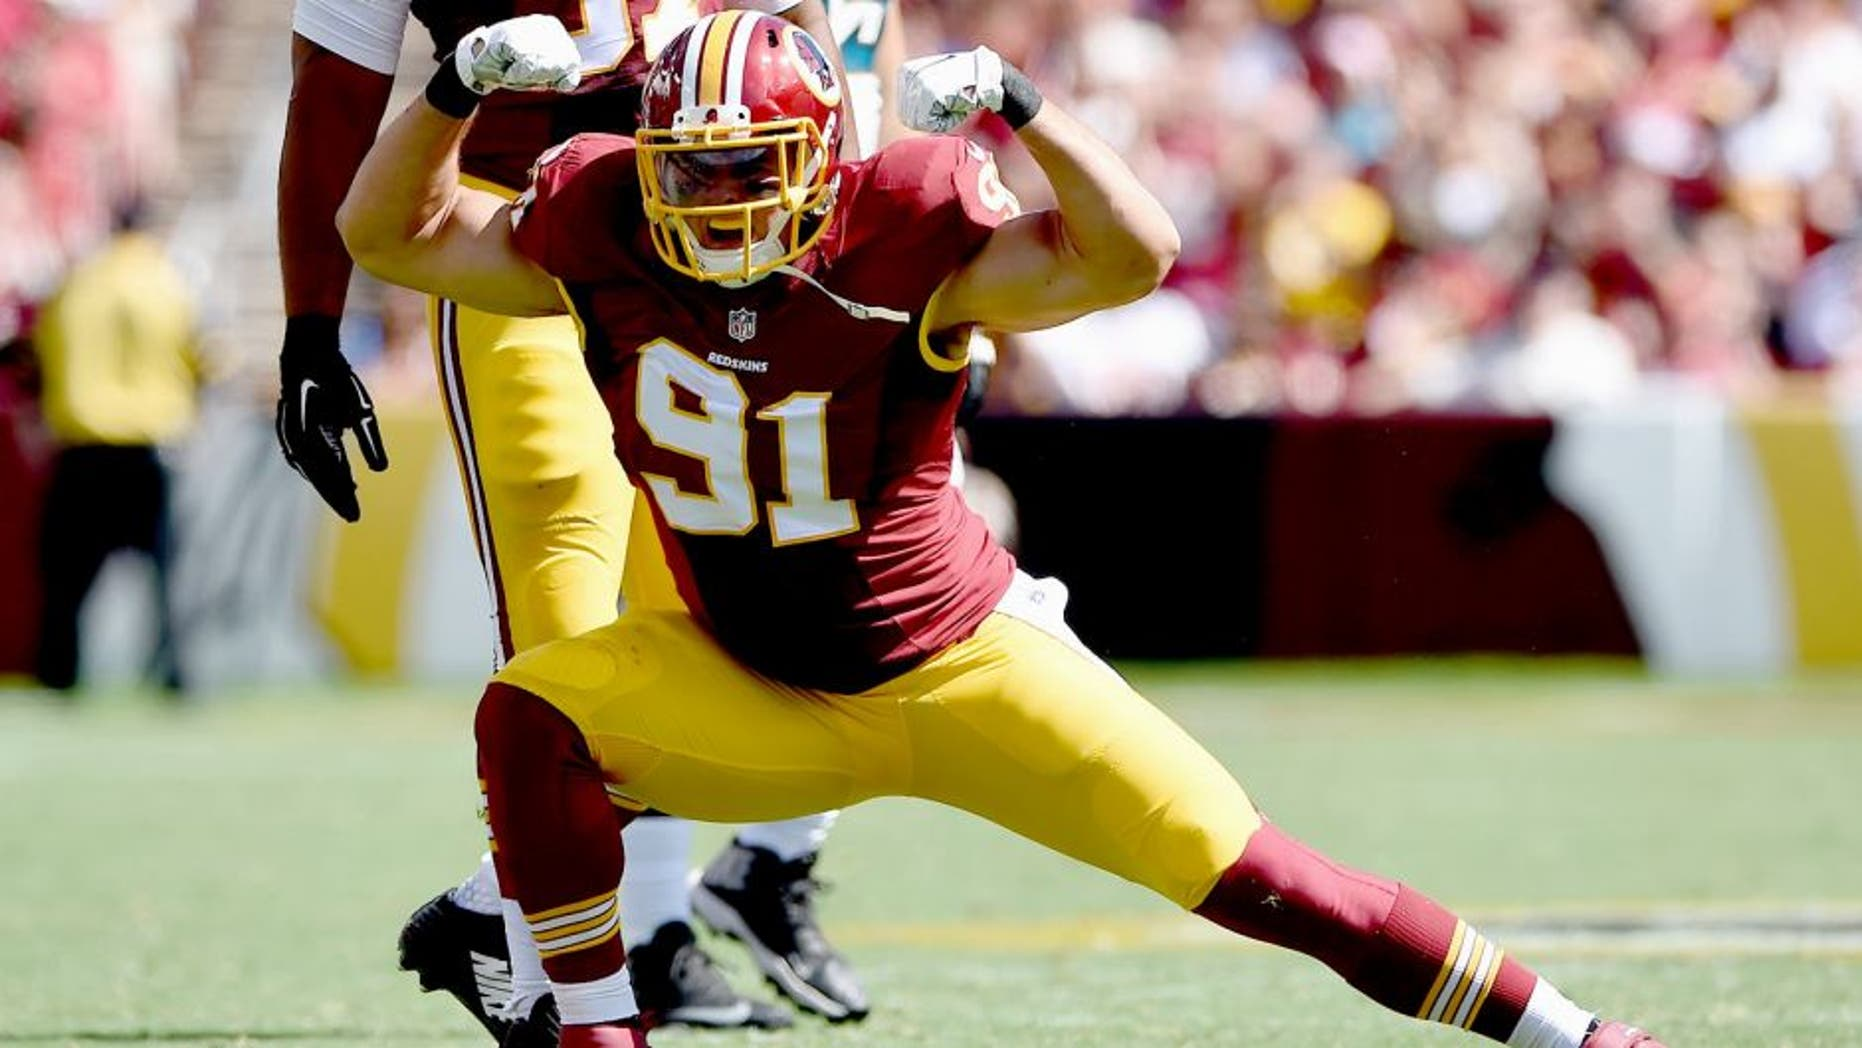 LANDOVER, MD - SEPTEMBER 14: Outside linebacker Ryan Kerrigan #91 of the Washington Redskins celebreates after recording a second quarter sack during a game against the Jacksonville Jaguars at FedExField on September 14, 2014 in Landover, Maryland. (Photo by Patrick Smith/Getty Images)